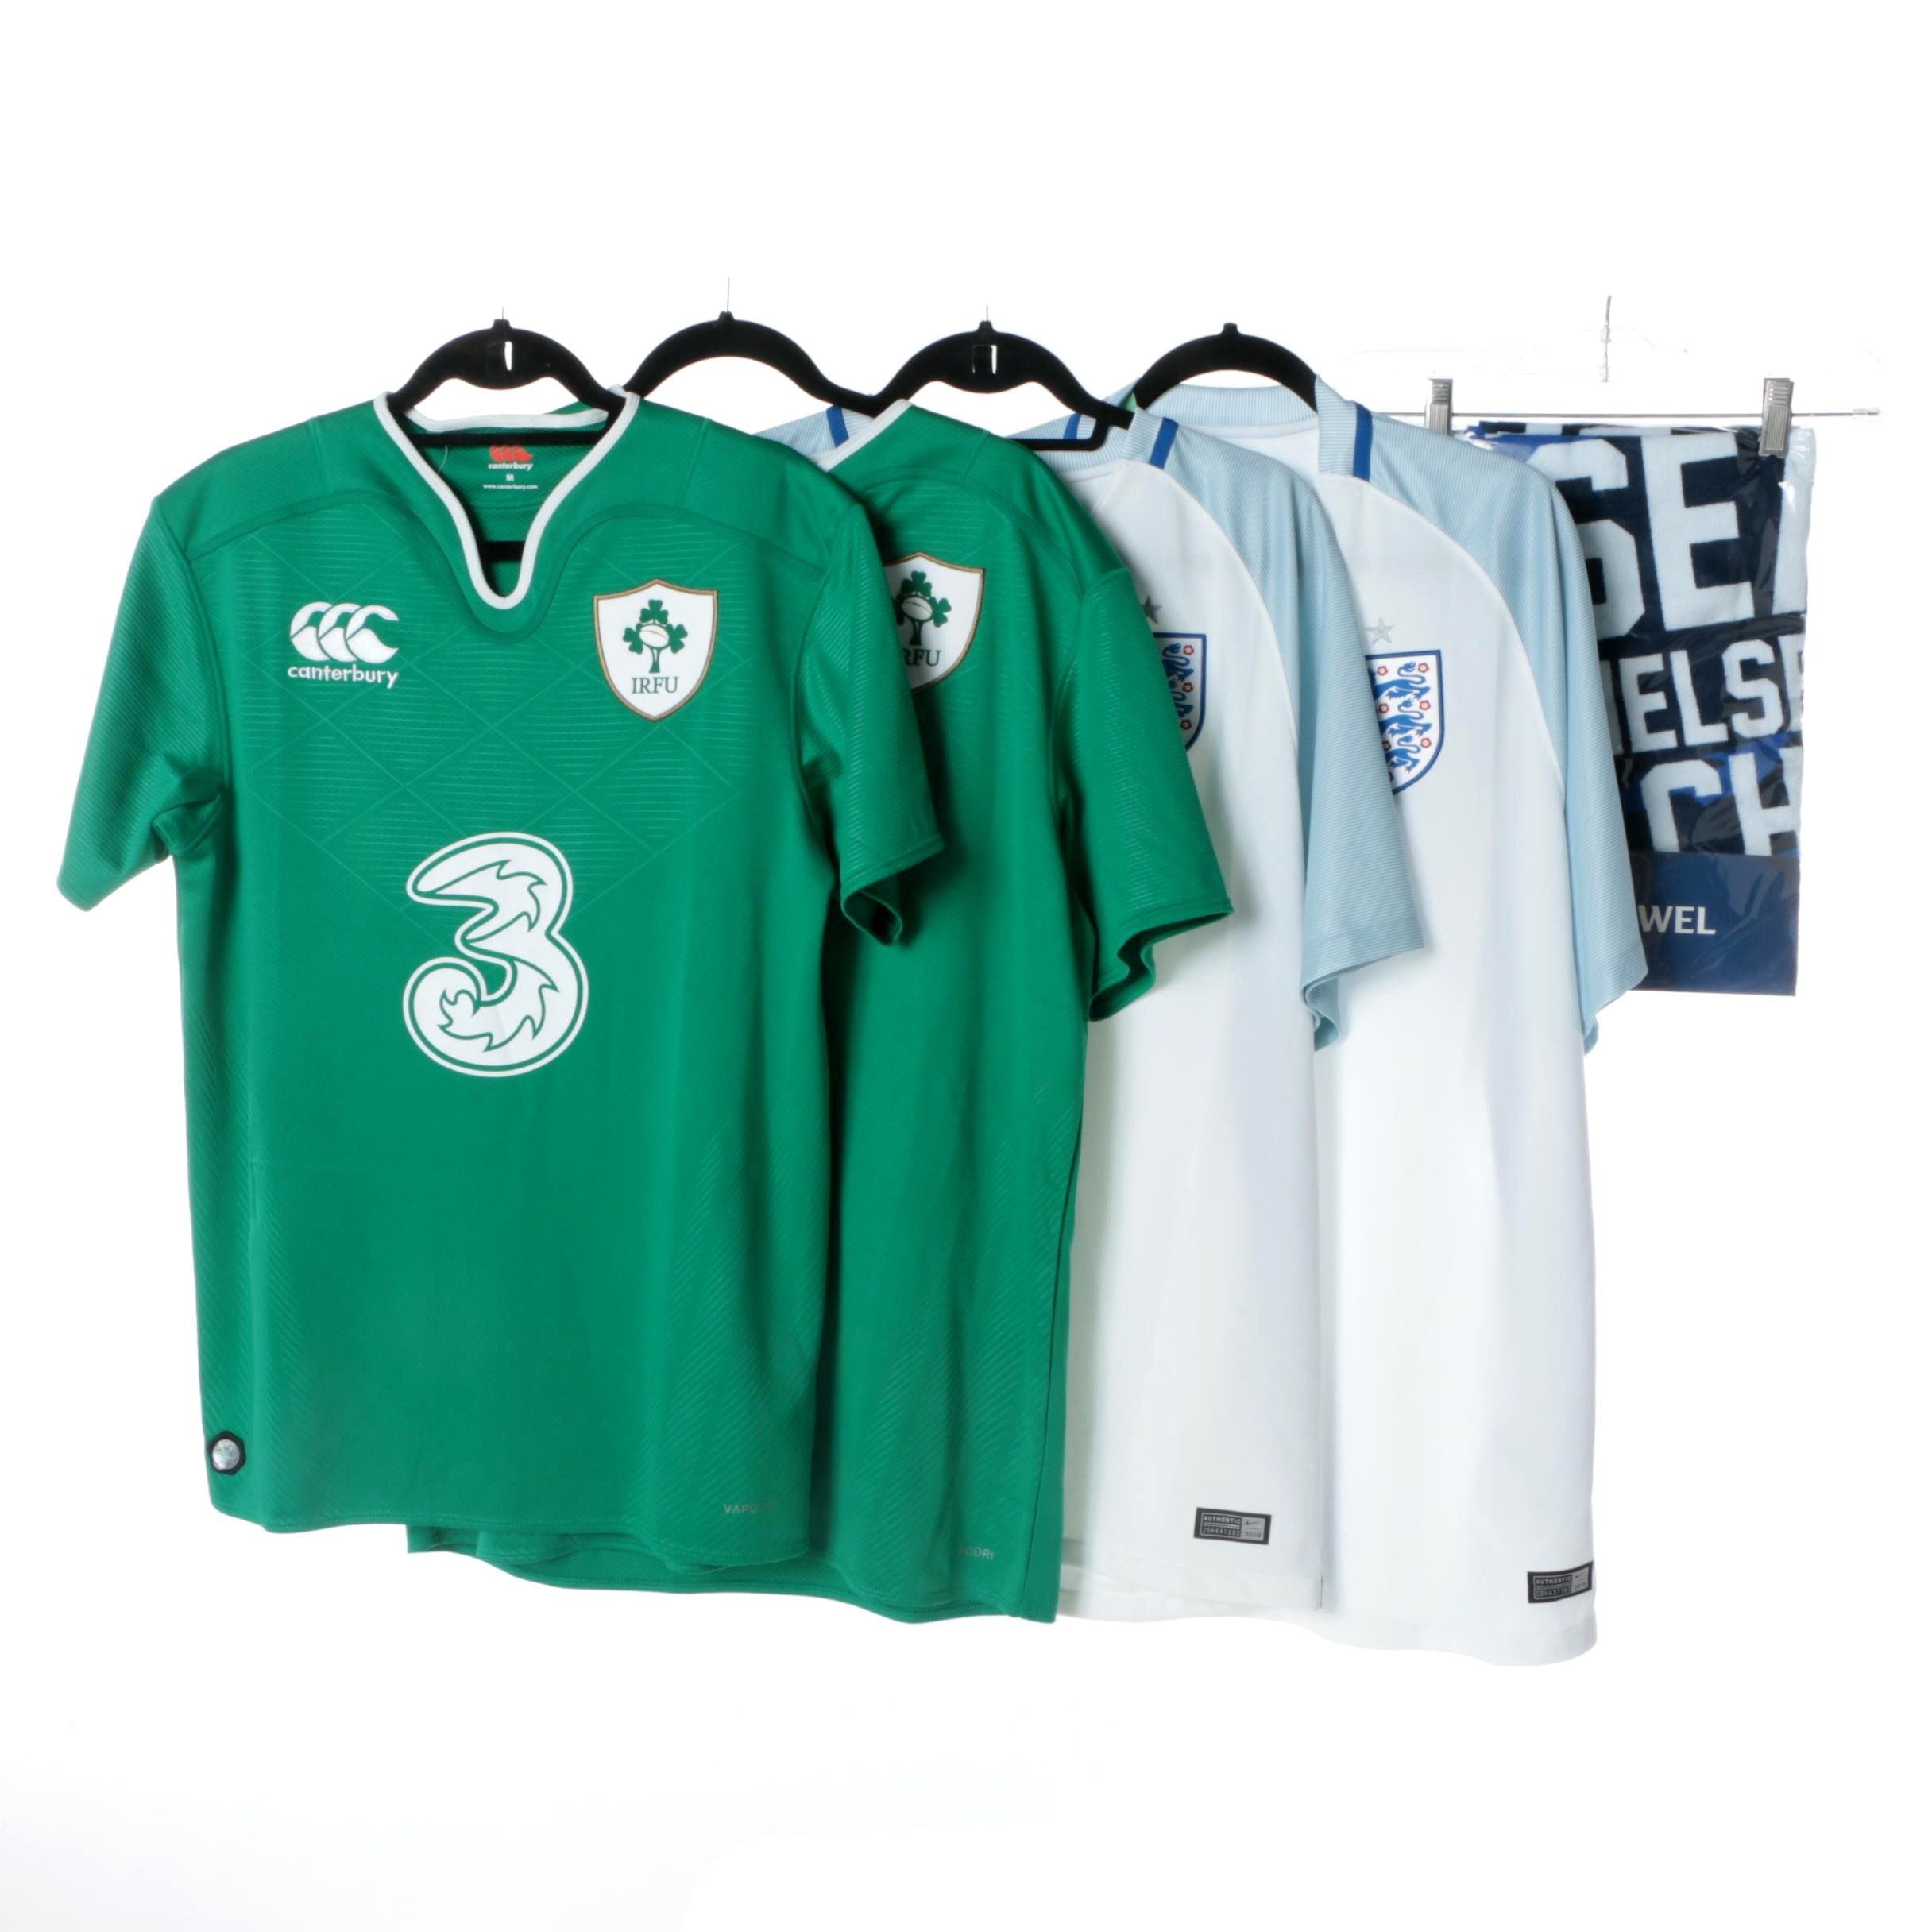 Men's Nike Chelsea and Canterbury IRFU Football Jerseys and Towel